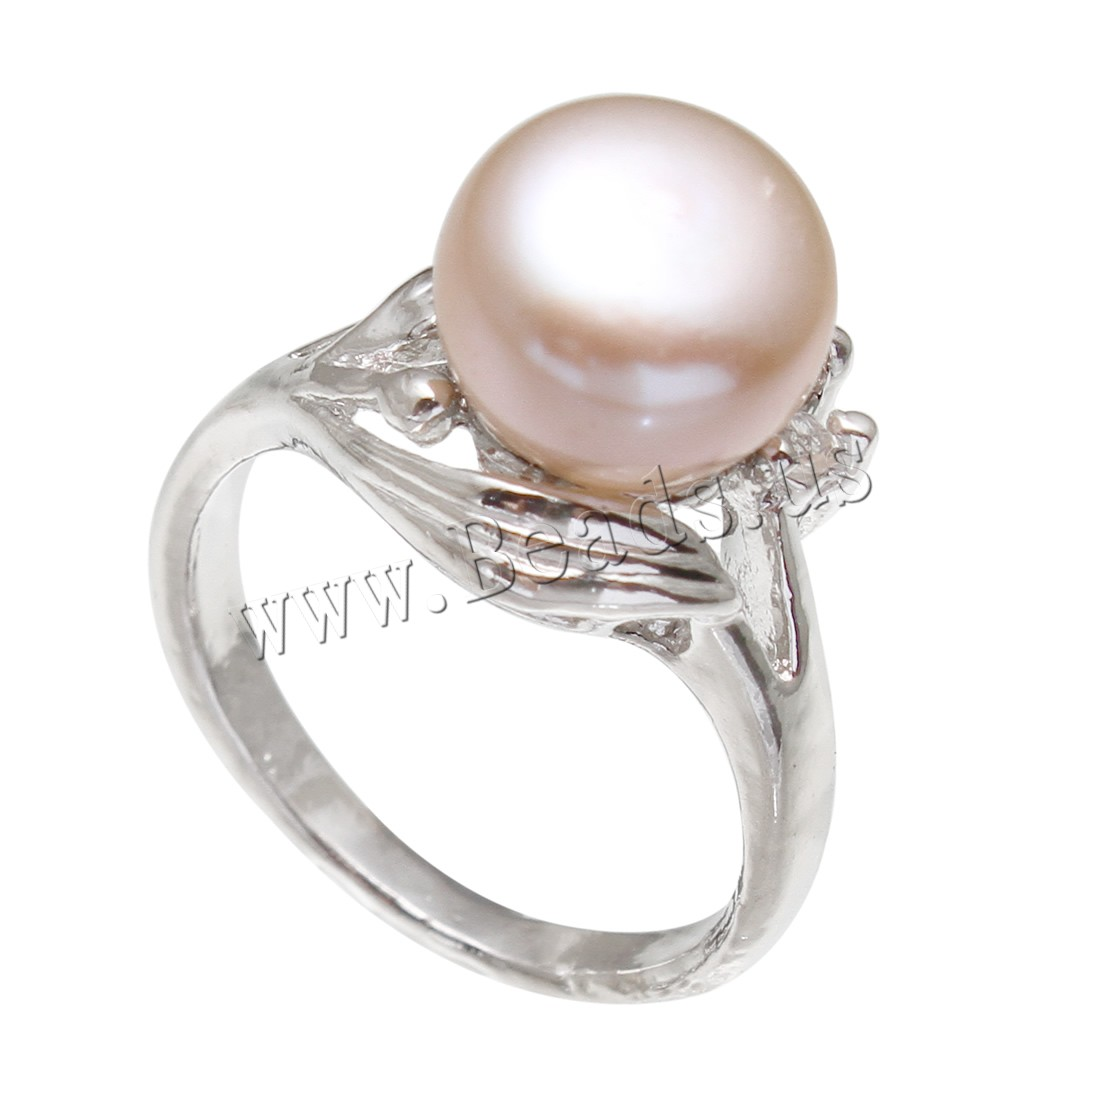 Buy Freshwater Pearl Finger Ring Brass Freshwater Pearl Flower platinum color plated woman & rhinestone purple nickel lead & cadmium free 8-9mm US Ring Size:8-9 Sold PC